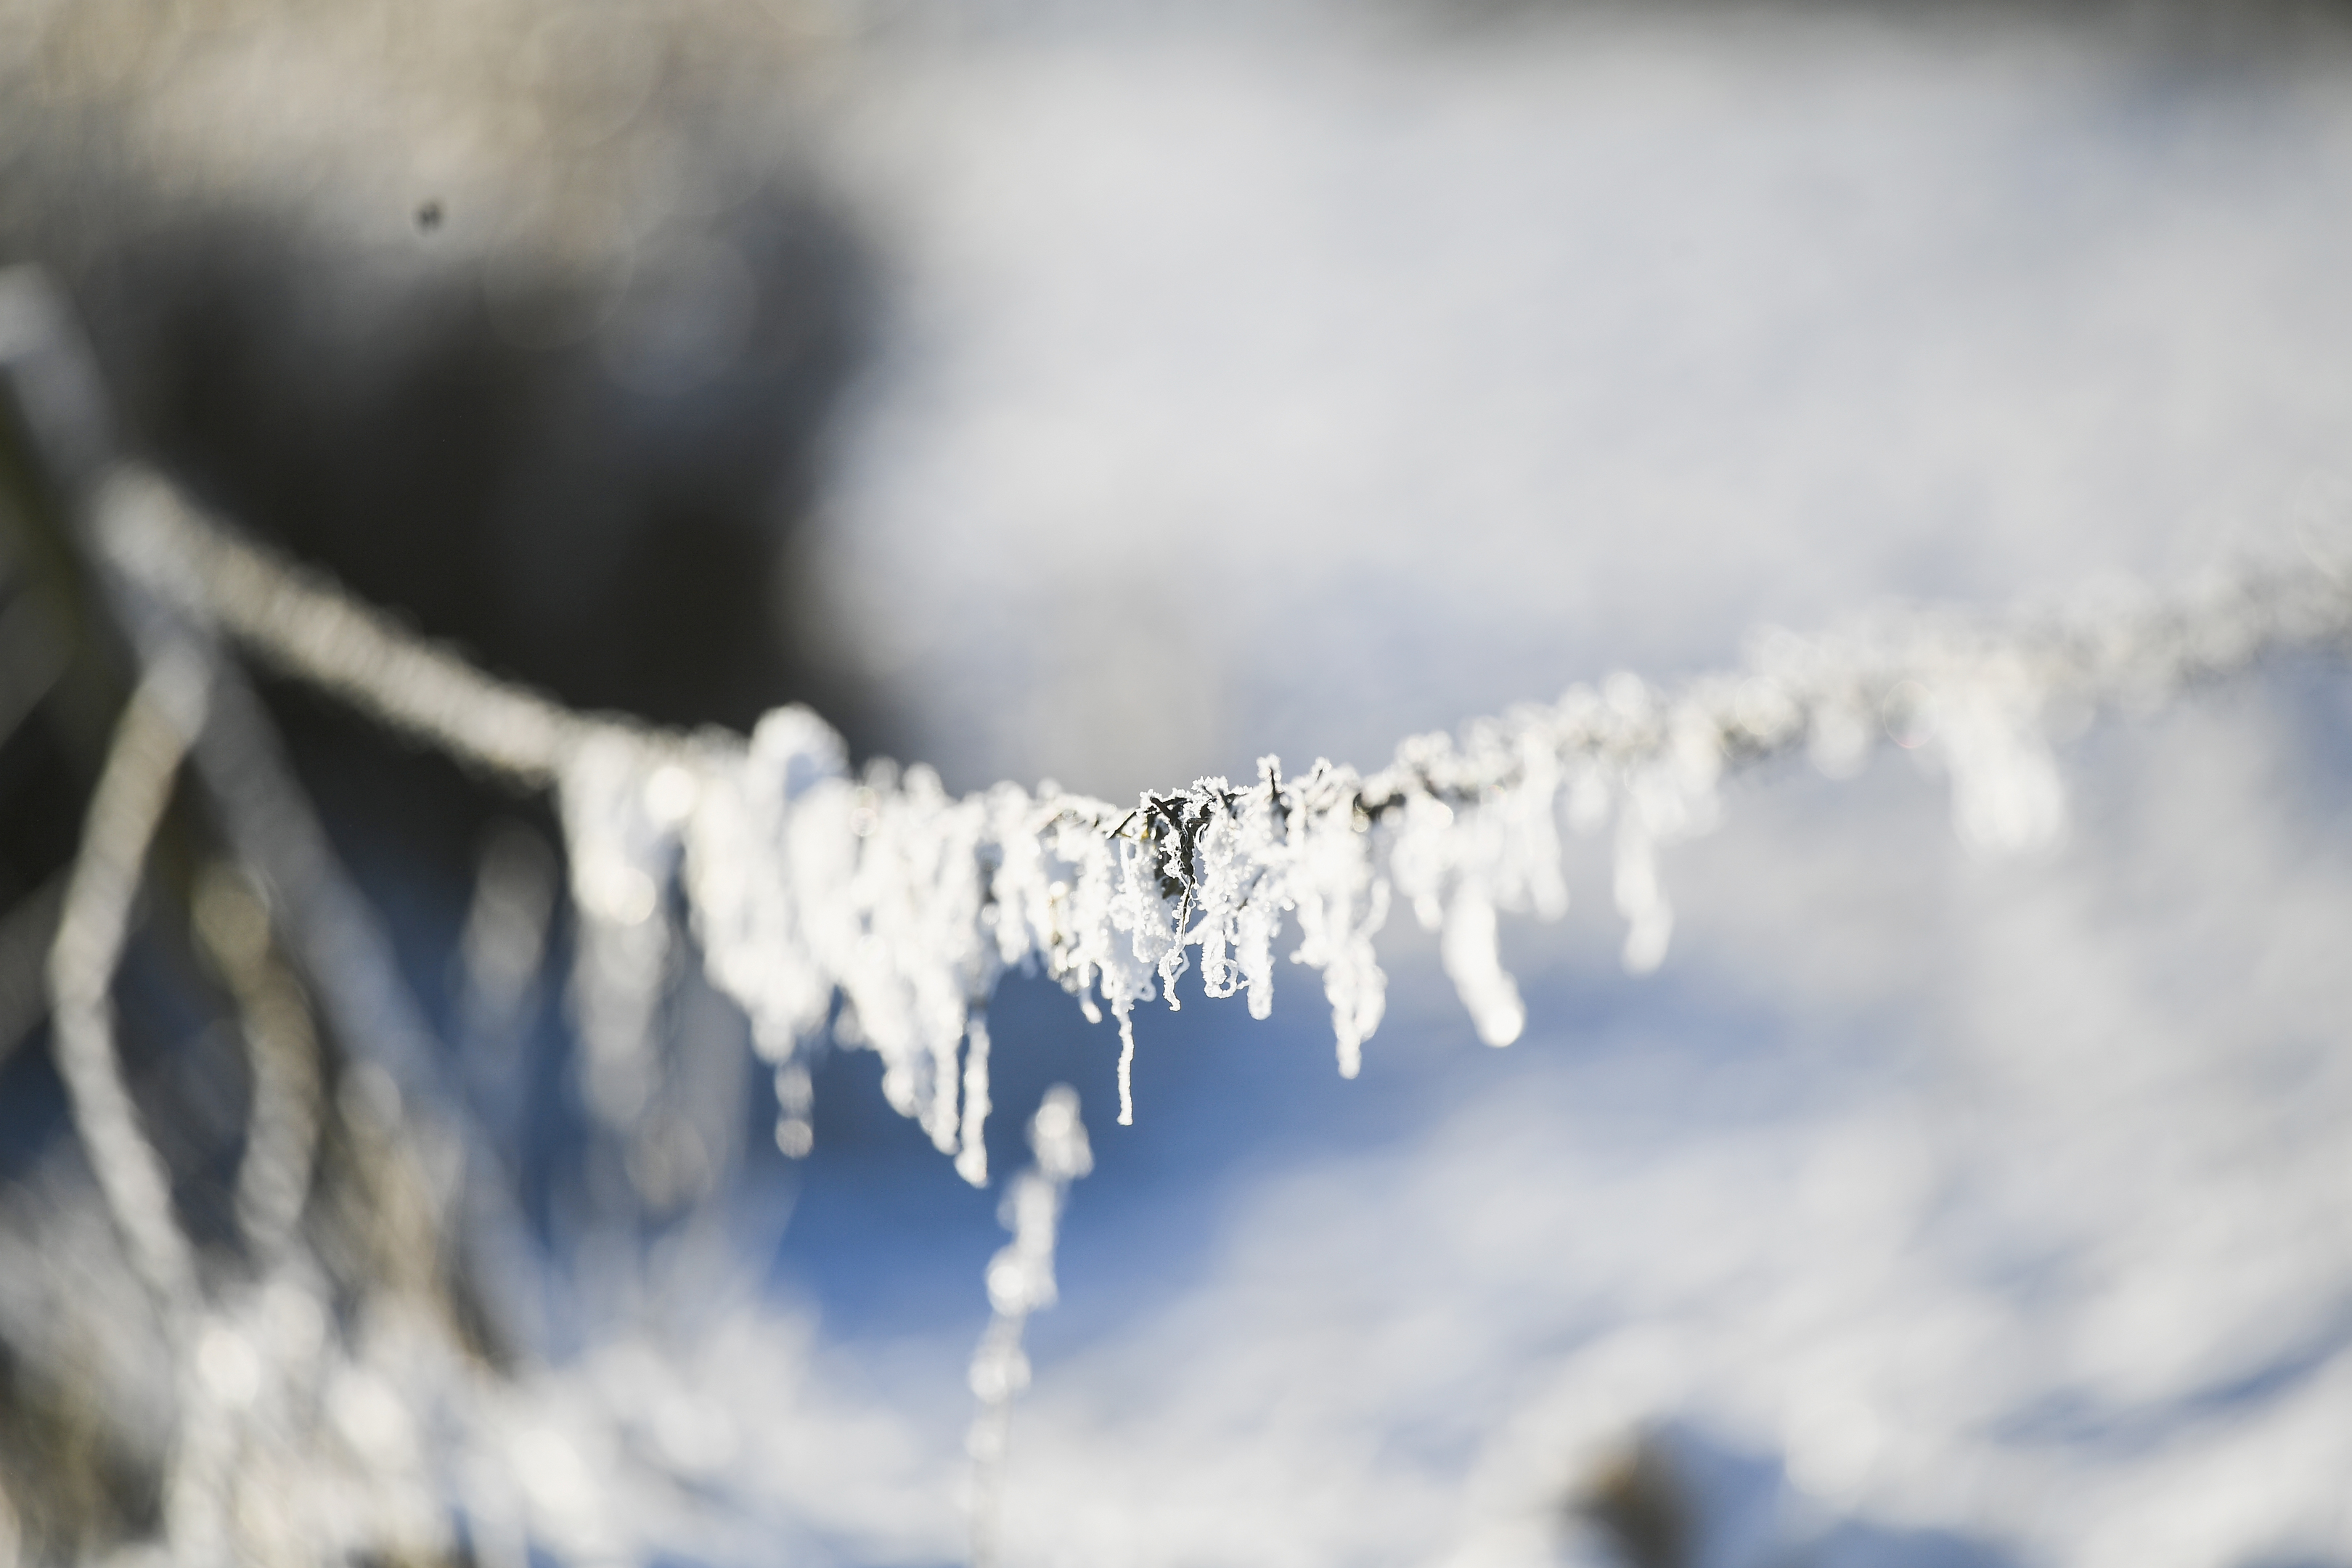 Ice forms on a fence as temperatures drop across the country.